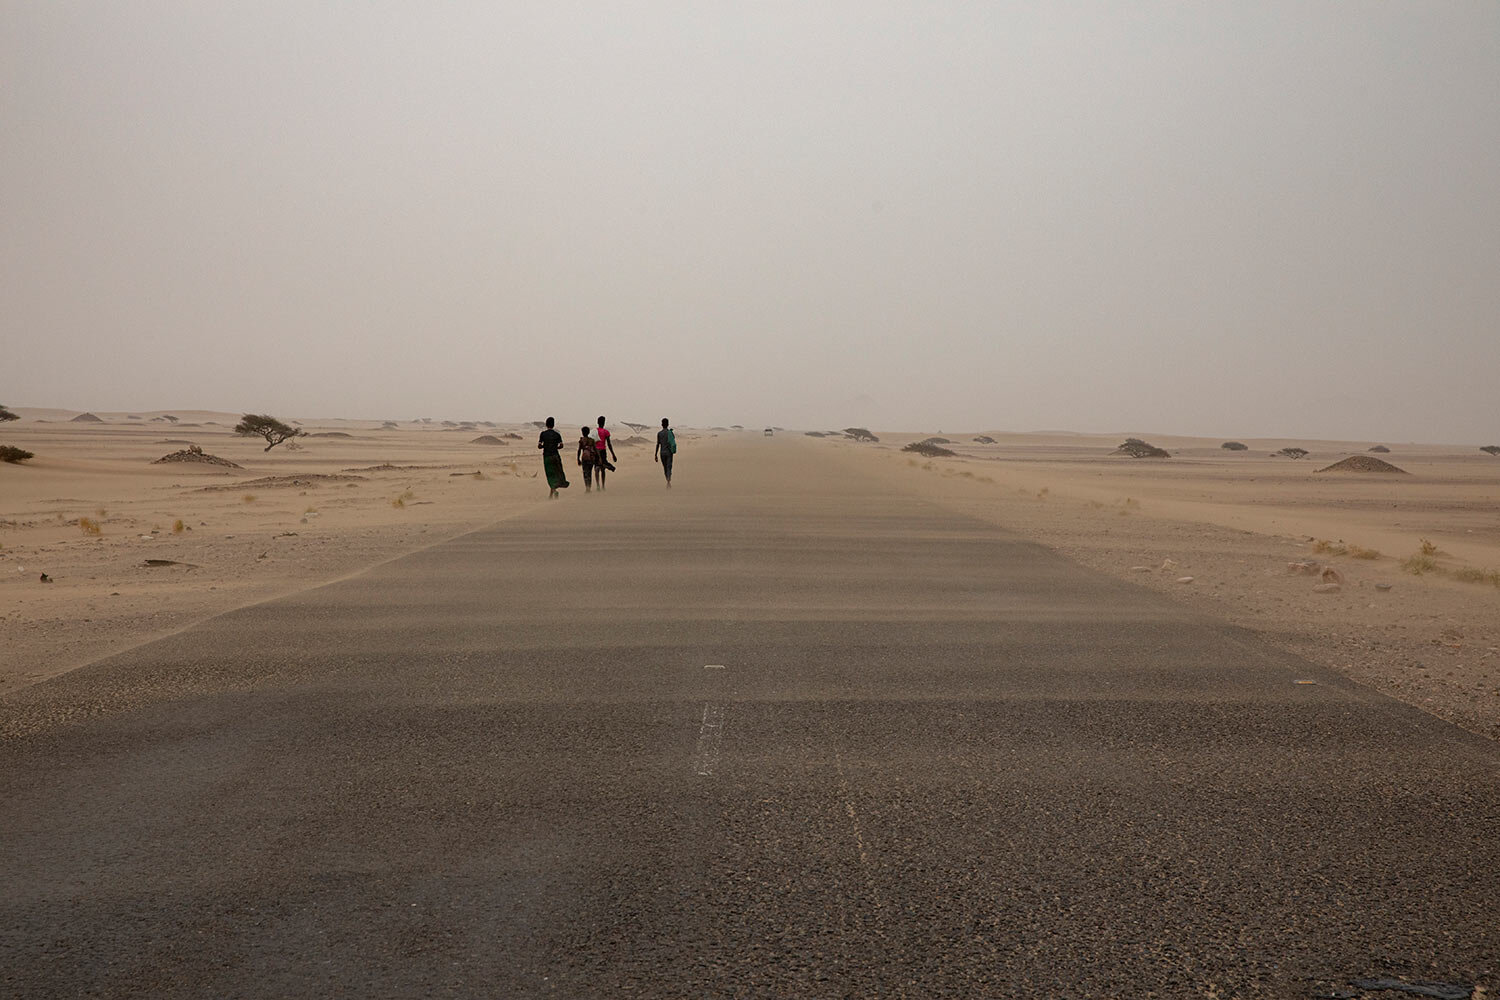 Ethiopian migrants walk along a road in a sandstorm in Lahj, Yemen. (AP Photo/Nariman El-Mofty)